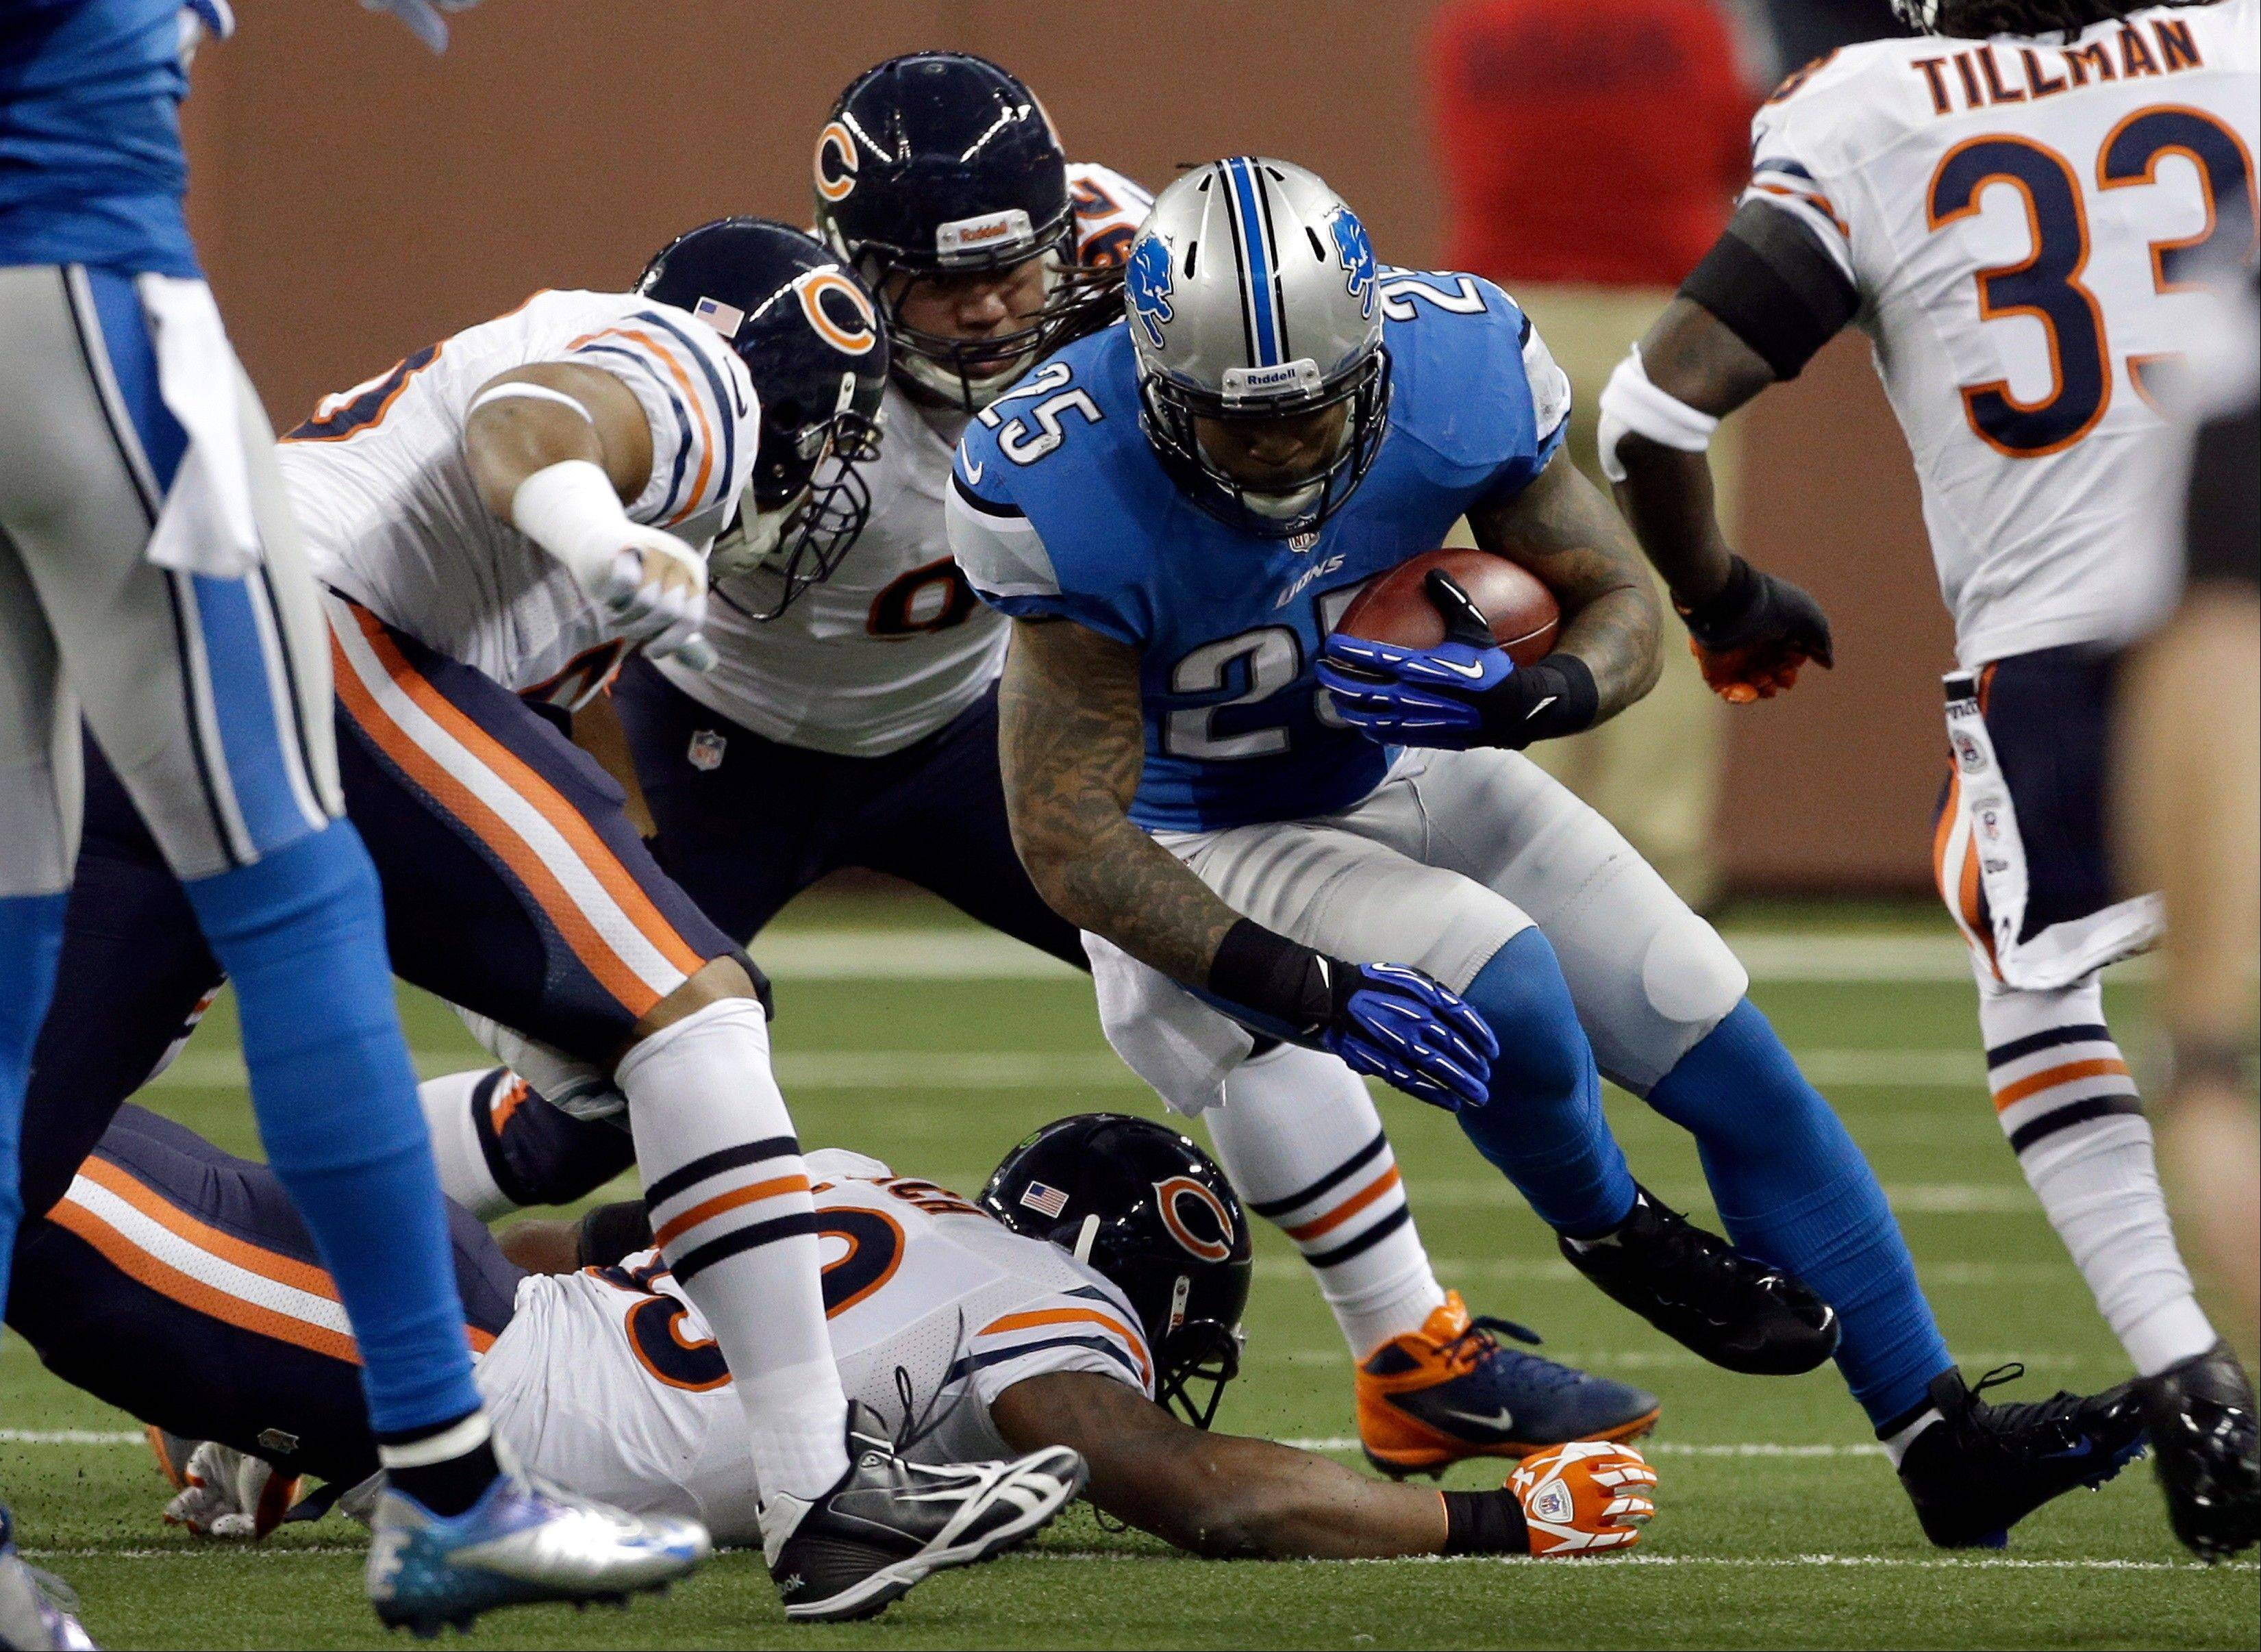 Detroit Lions running back Mikel Leshoure (25) is stopped by the Chicago Bears defense during the first quarter.